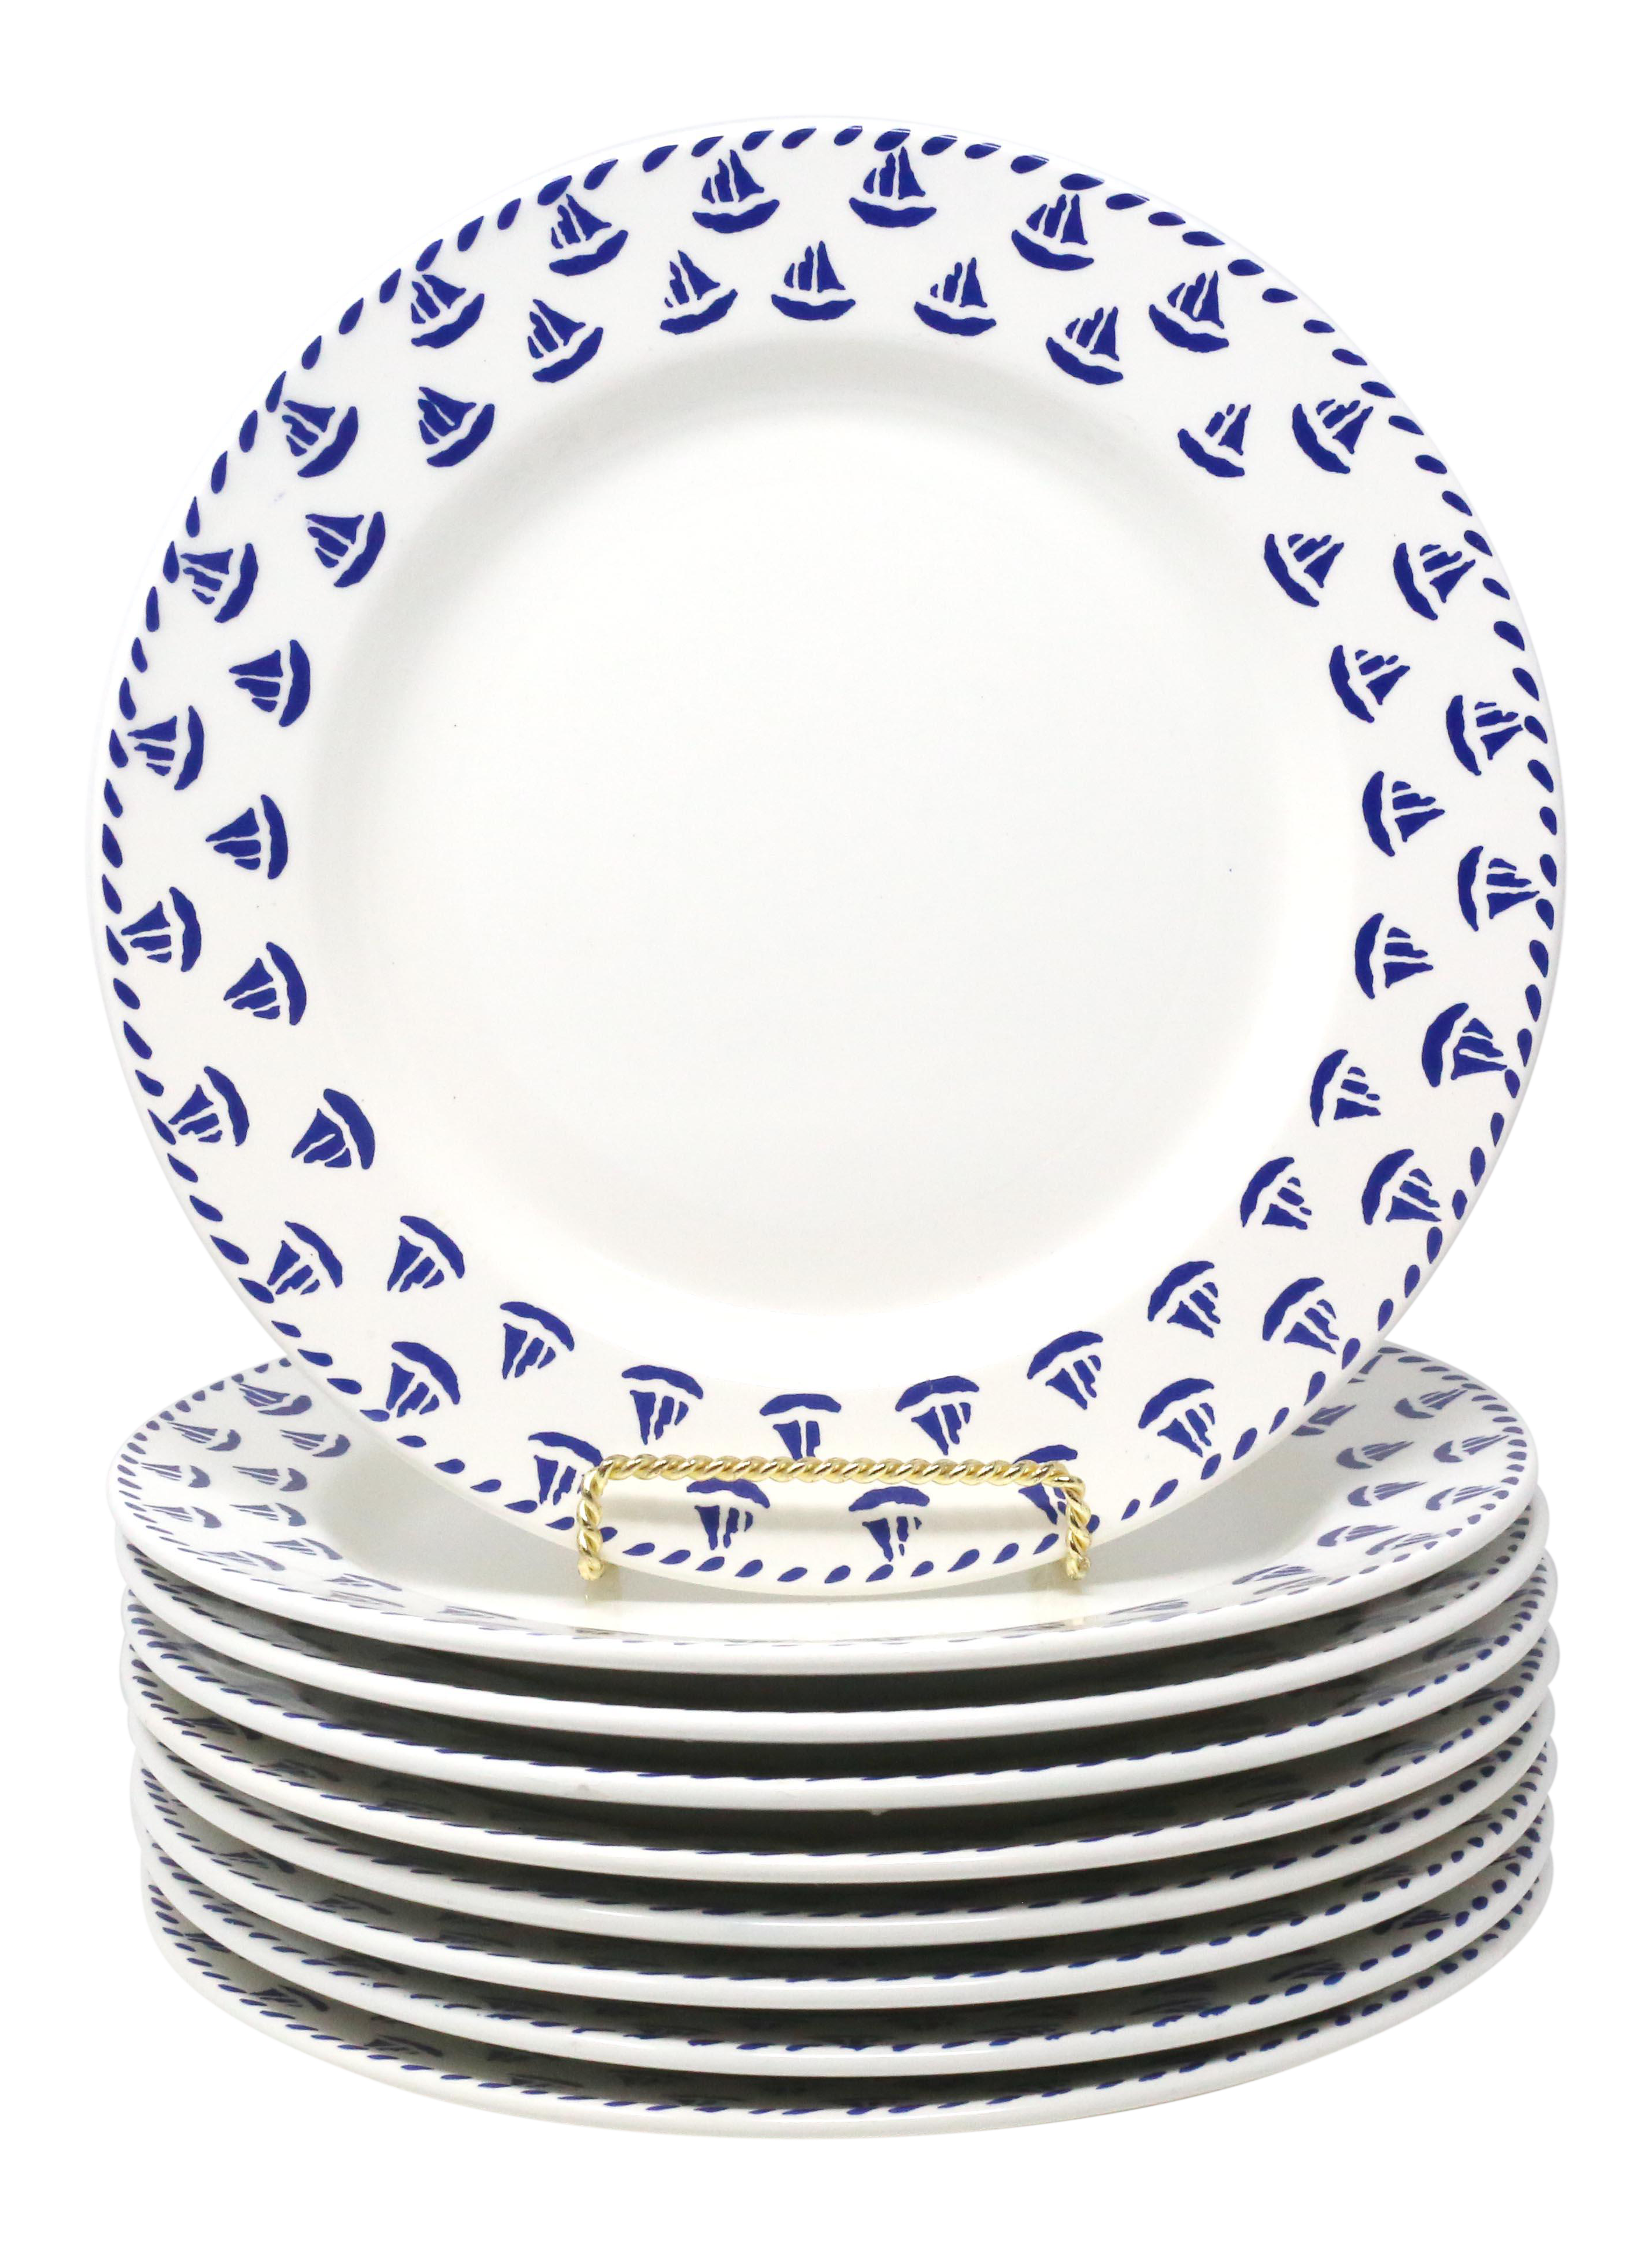 Made In Italy Vintage Italian Nautical Sailboat Dinner Plates By Furio Set Of 9 Plates Dinner Plates Vintage Italian